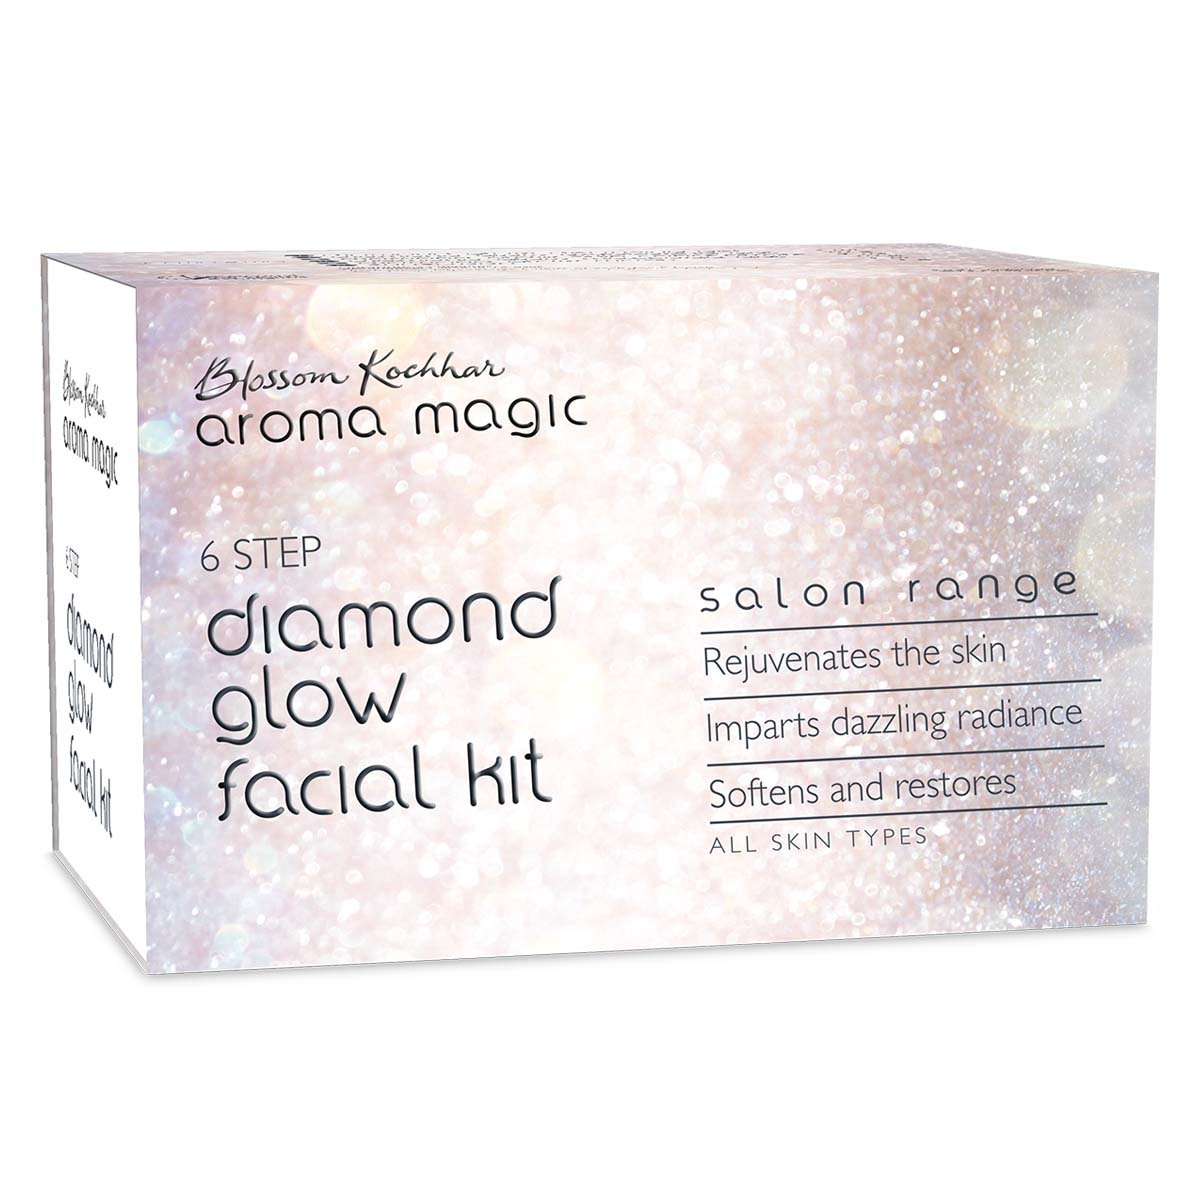 Diamond Glow Facial Kit